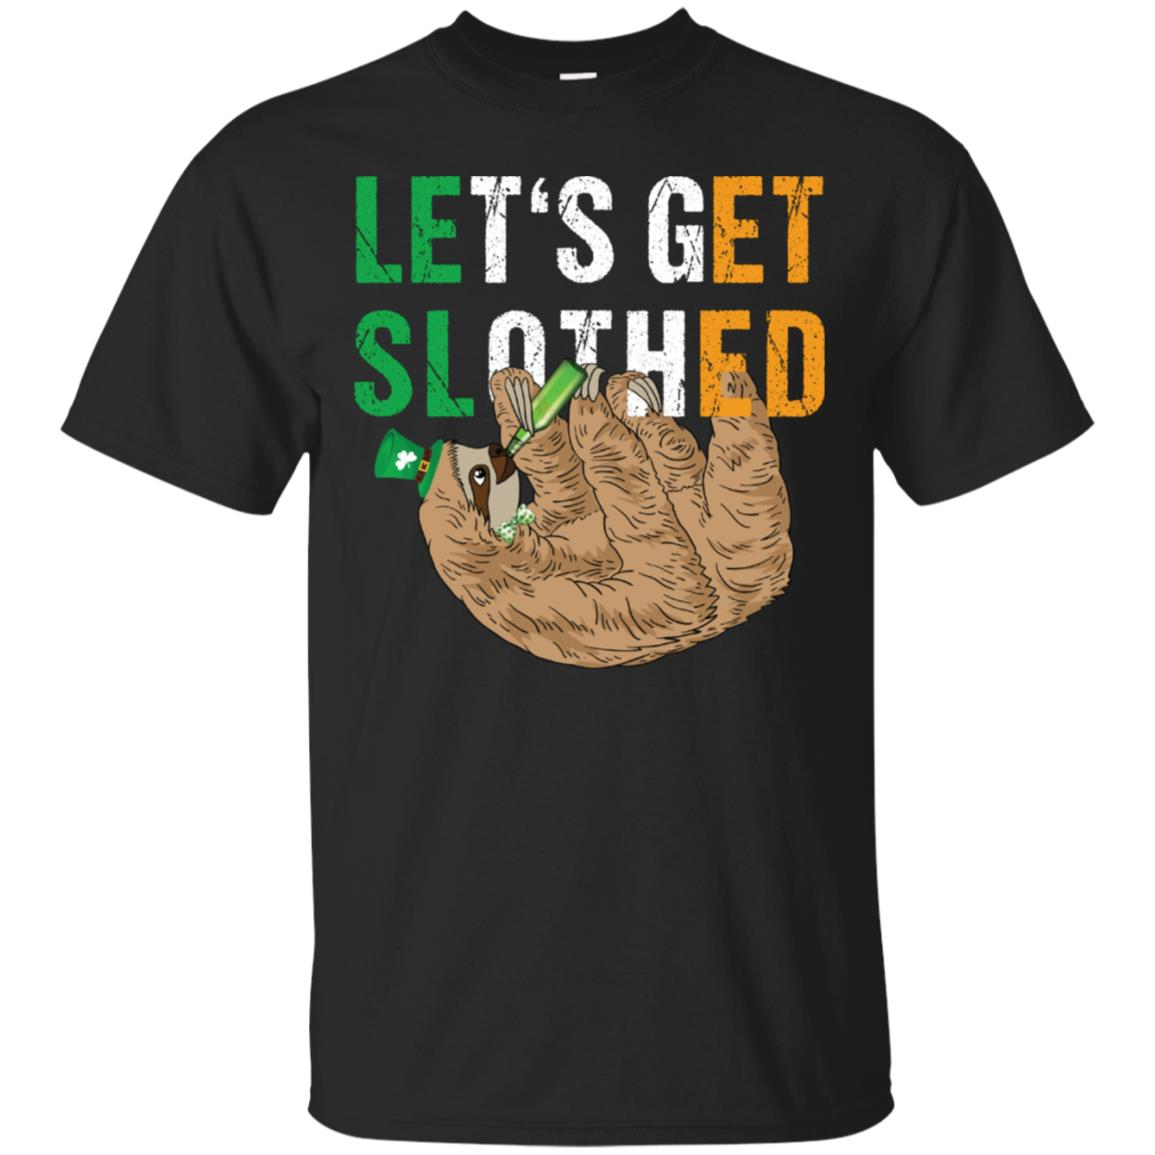 Let's Get Slothed T-Shirt  Sloth St Patricks Day Shirt 99promocode